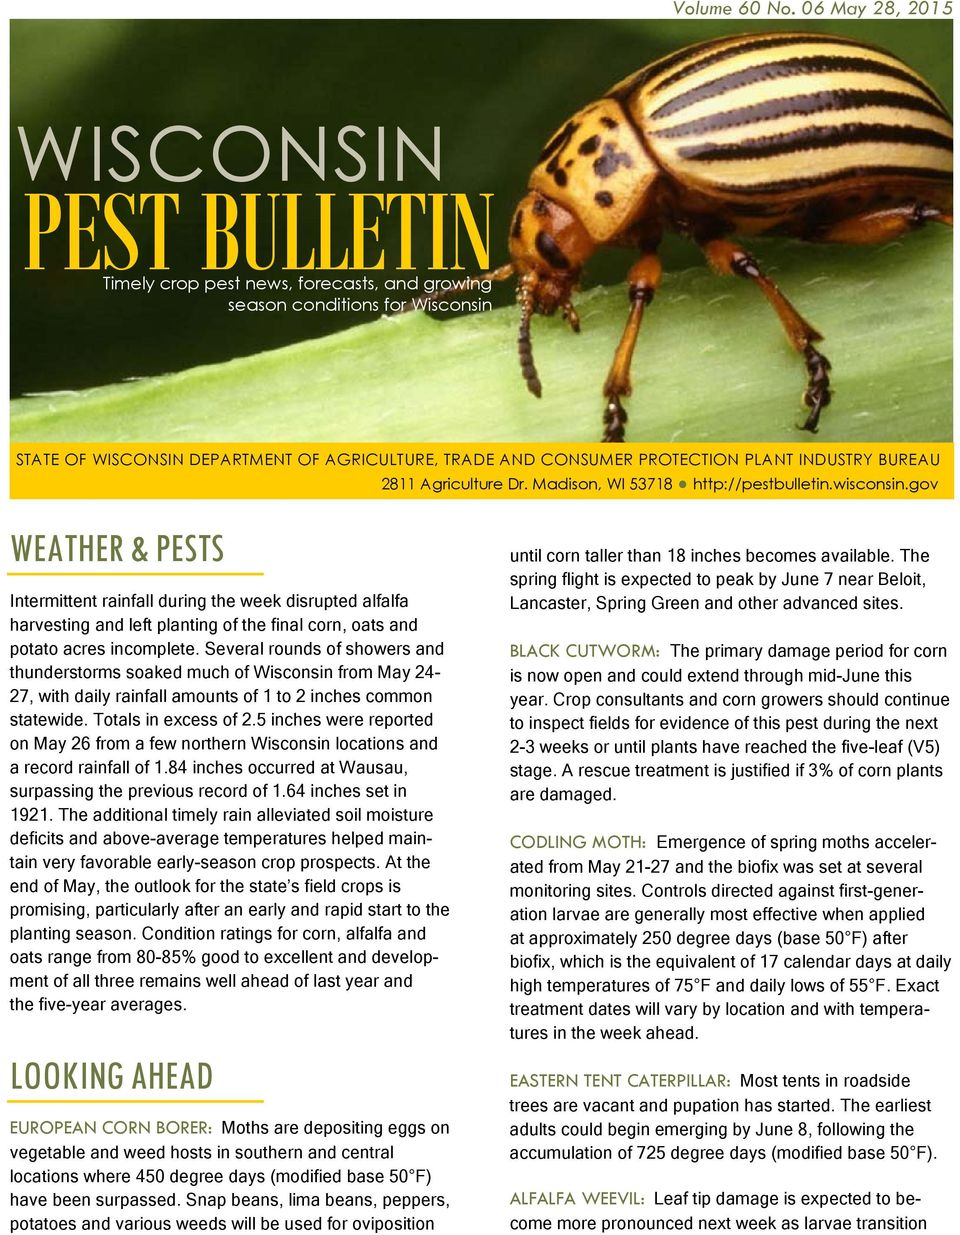 INDUSTRY BUREAU 2811 Agriculture Dr. Madison, WI 53718 http://pestbulletin.wisconsin.